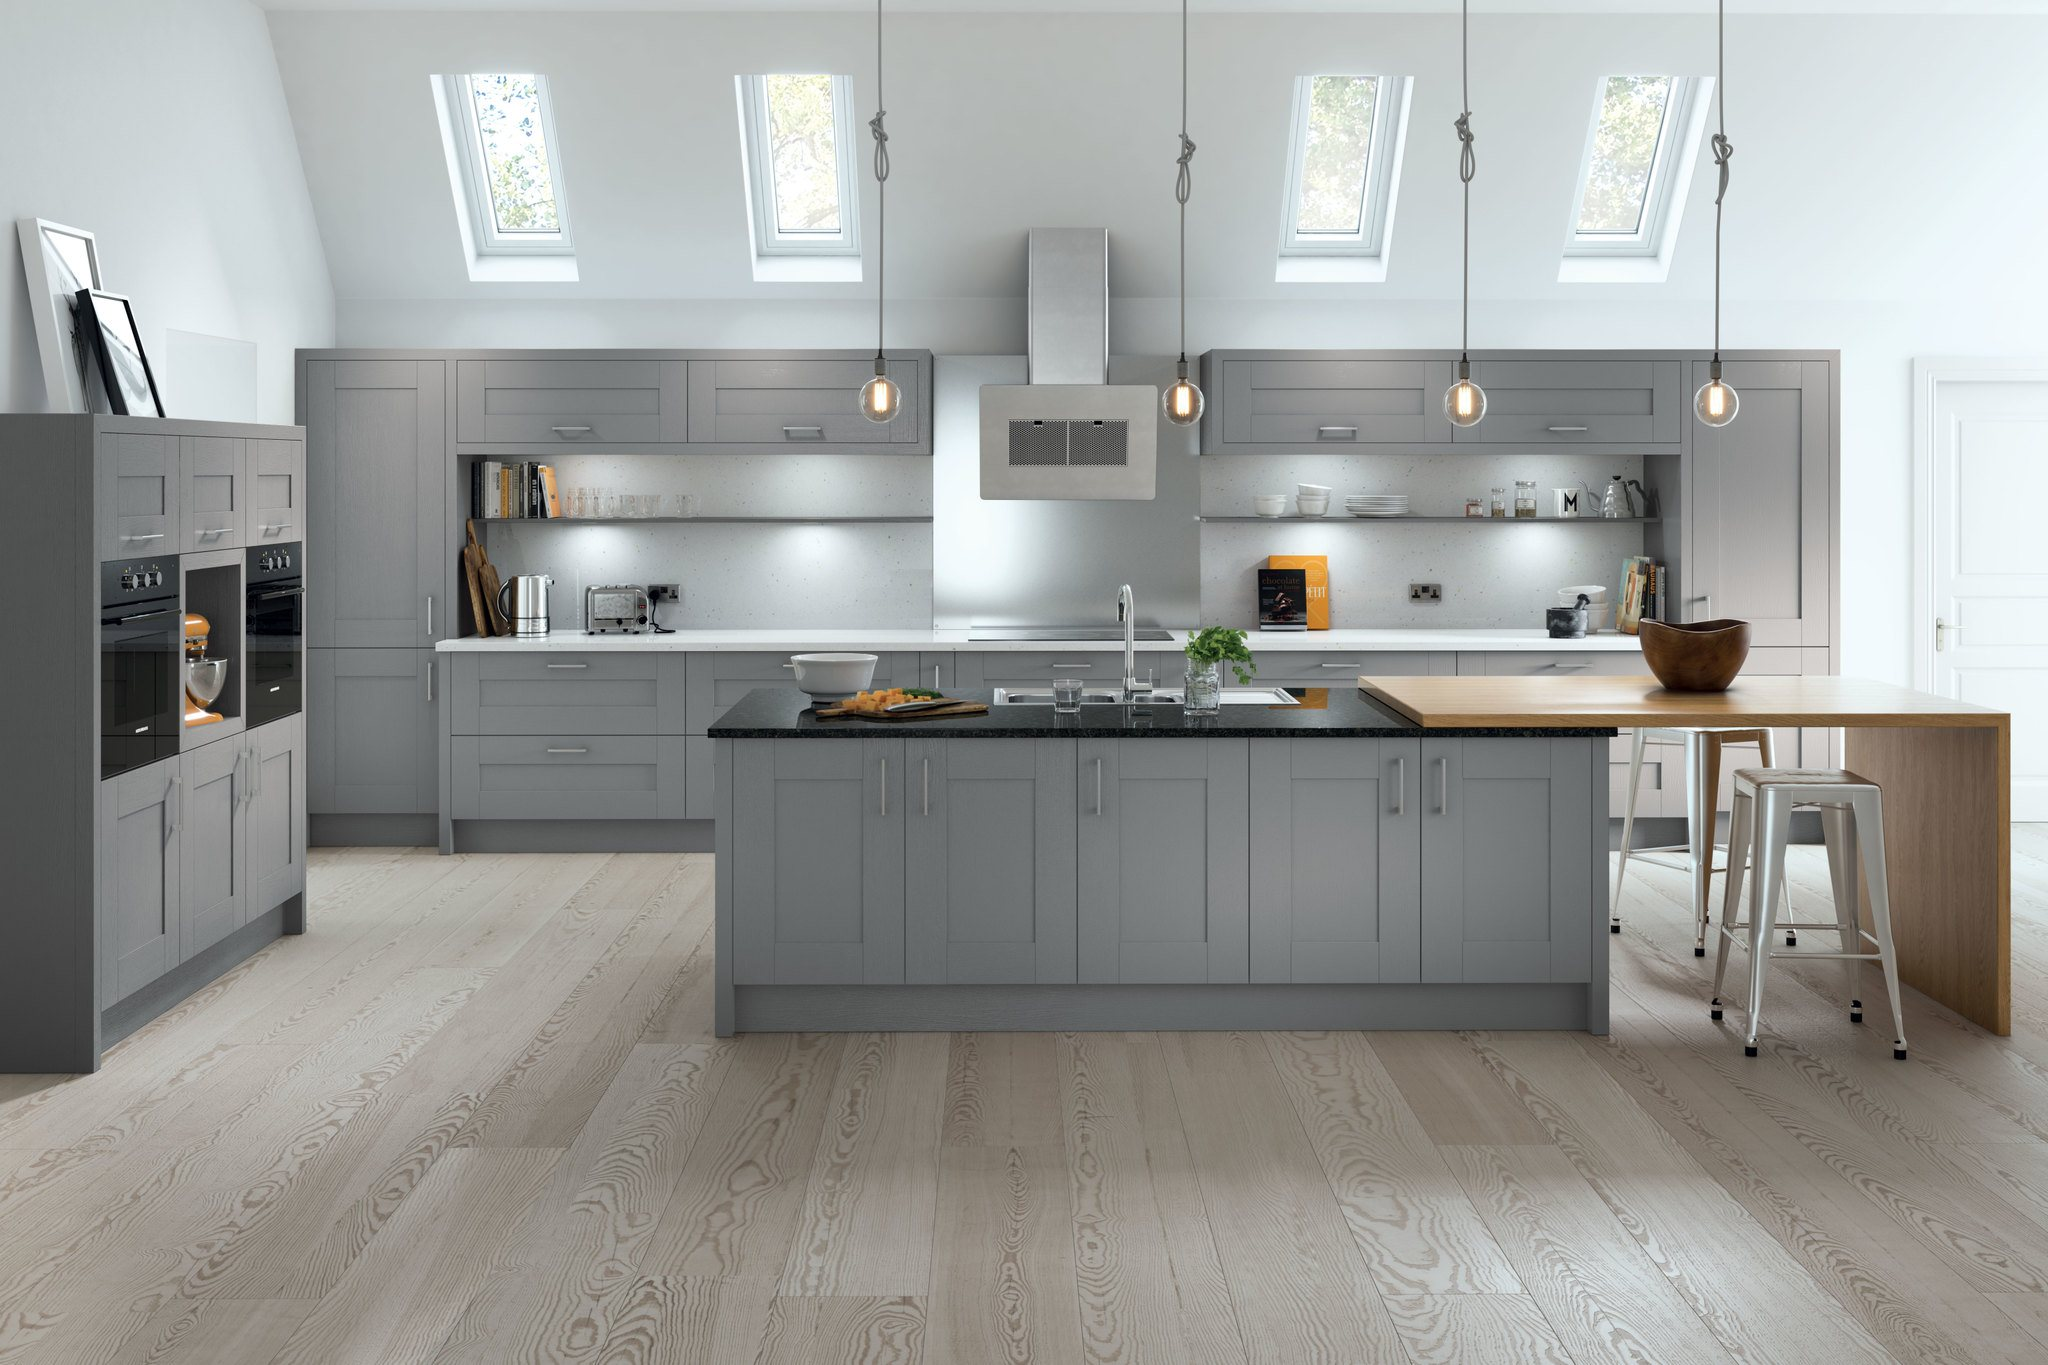 Kitchen fitters North wales image